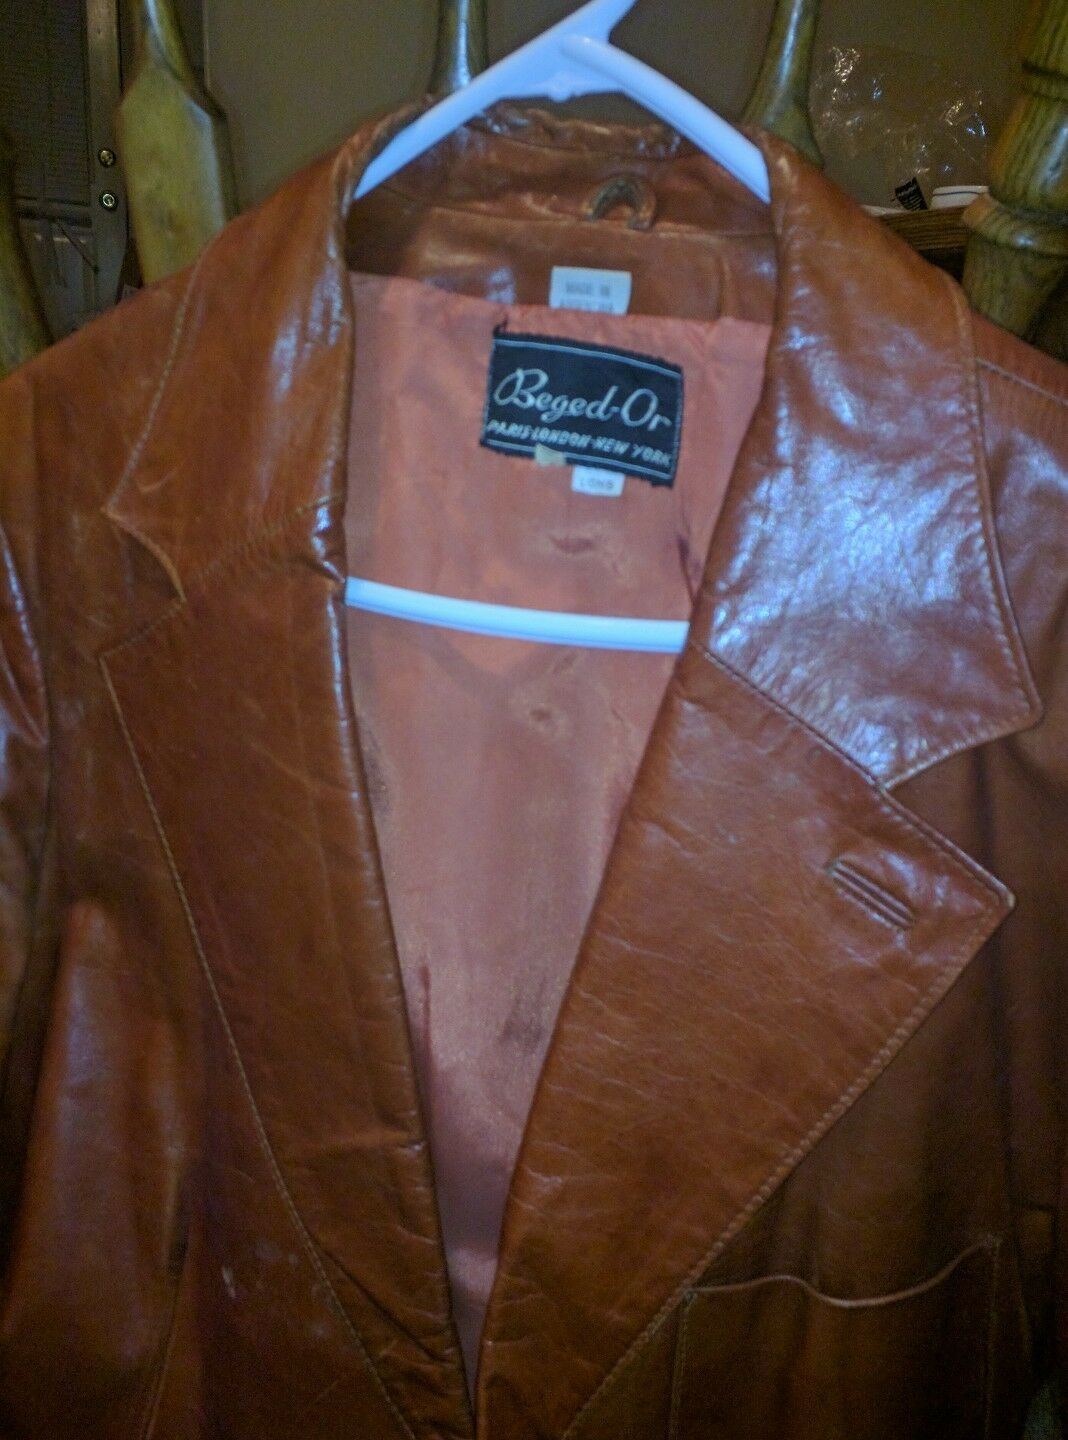 BEGED-OR Paris London New York Camel Tan Leather Blazer Size46 made in silverina